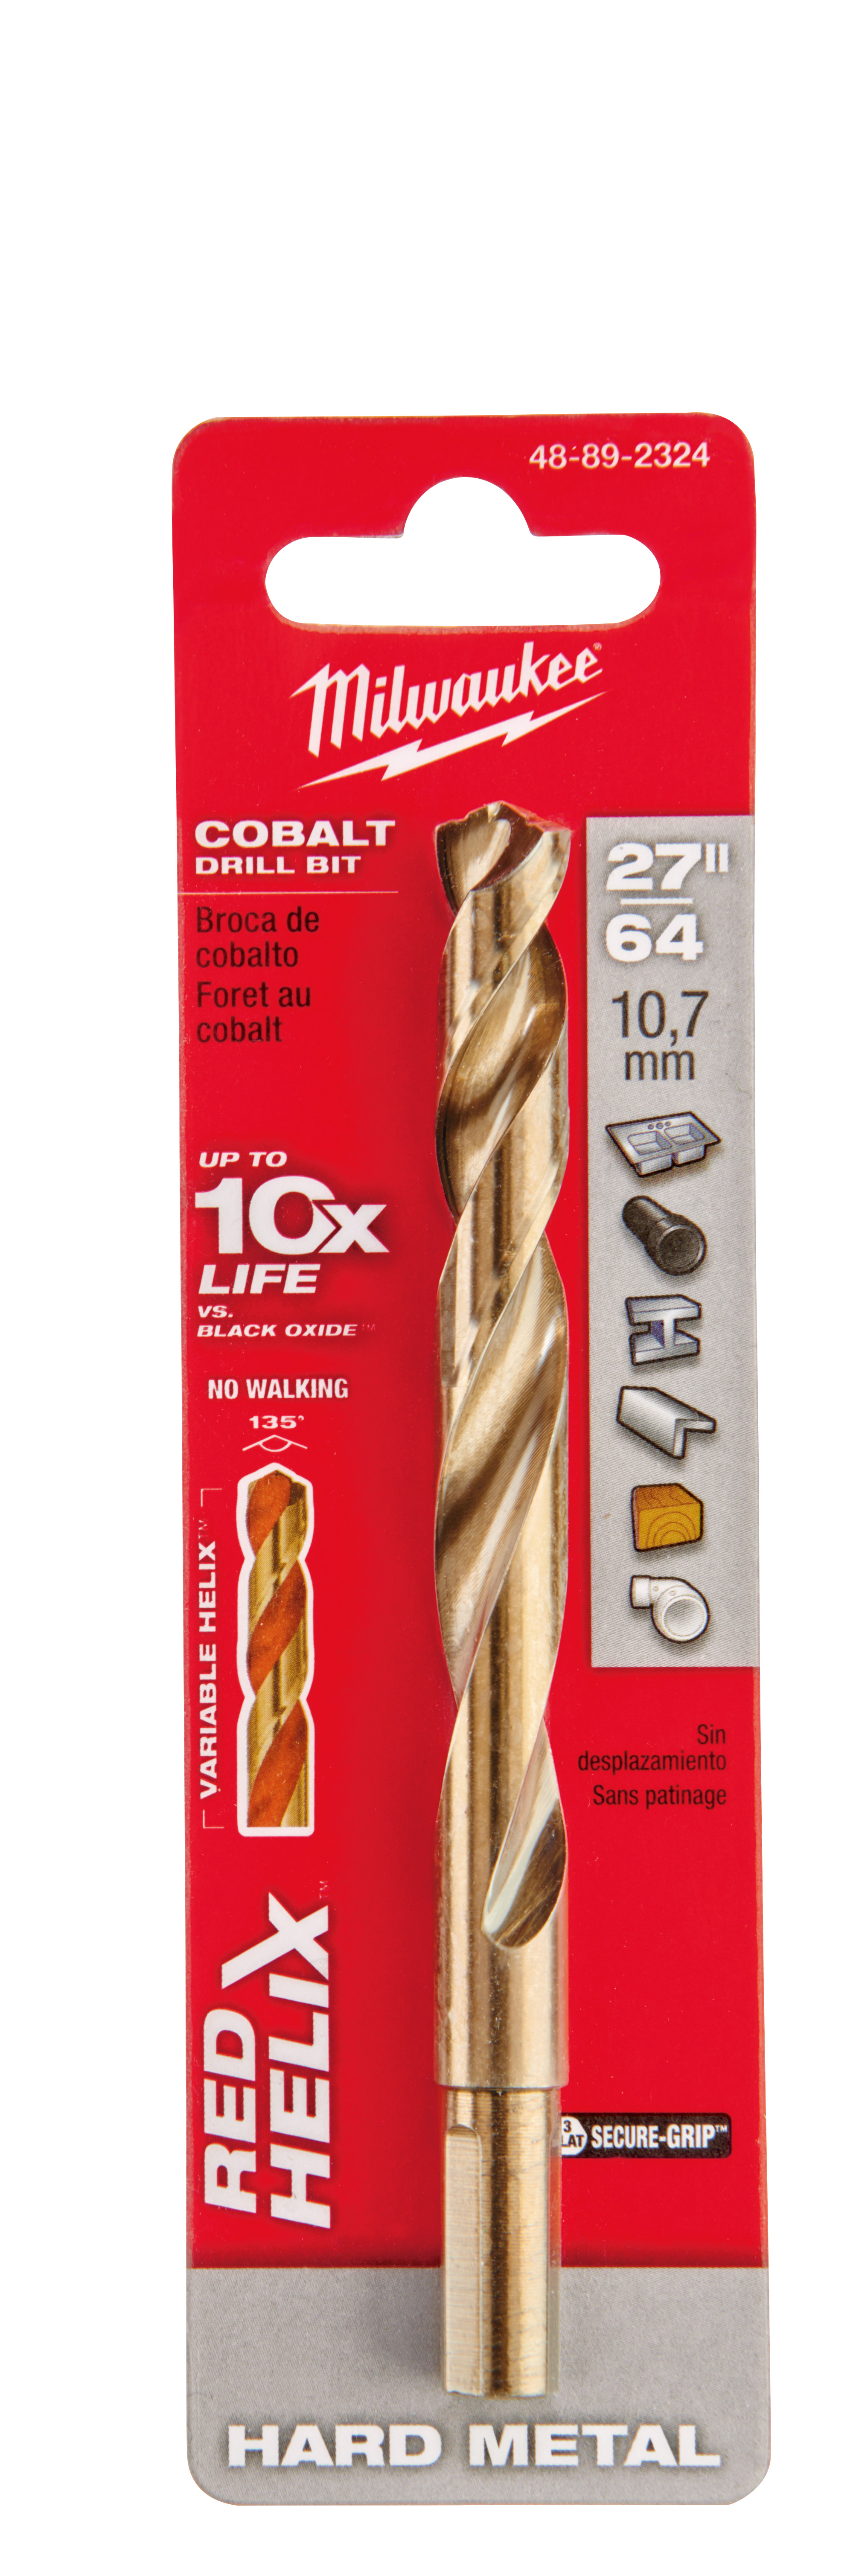 Milwaukee® 48-89-2324 RED HELIX™ Jobber Length Twist Drill Bit, 27/64 in Drill - Fraction, 0.4219 in Drill - Decimal Inch, 135 deg Point, High Speed Cobalt, Uncoated